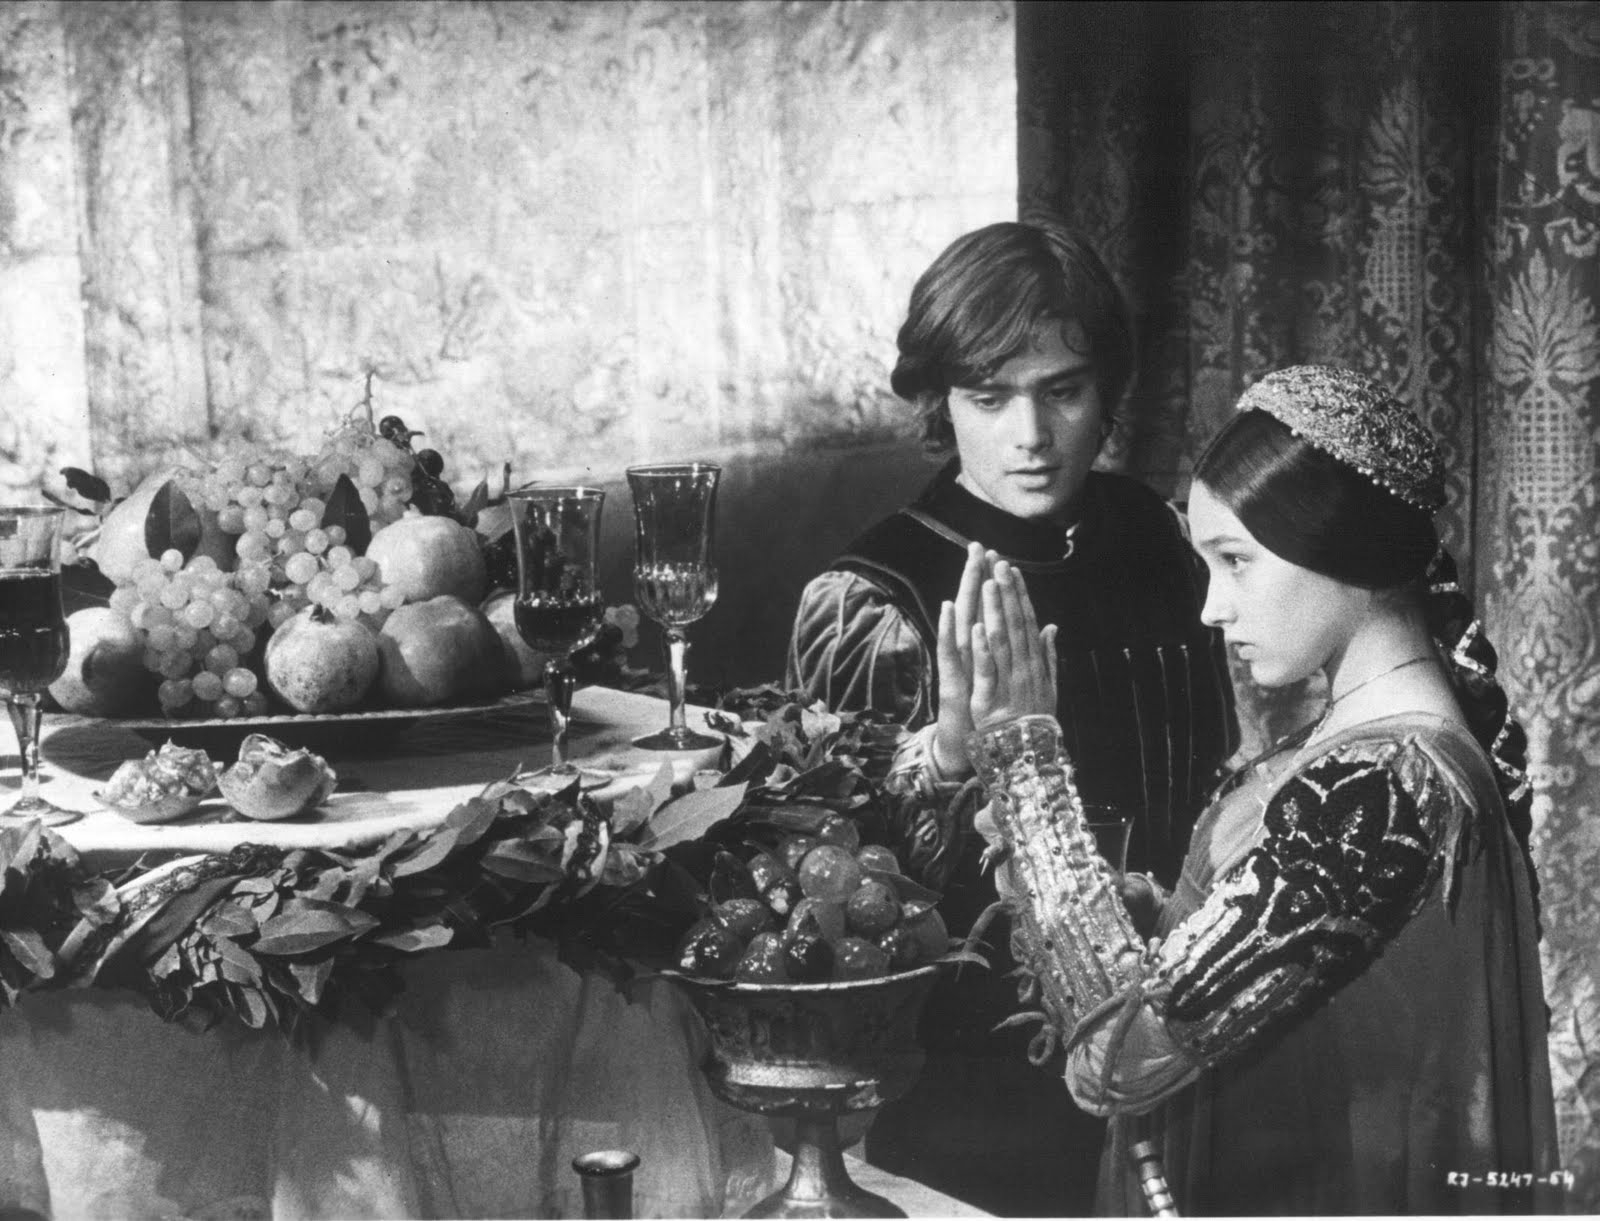 olivia hussey and leonard whiting dating Romeo and juliet (1968) both she and the actor who played romeo (leonard whiting) possess a beauty and innocence that i doubt any subsequent production could match zeferelli's.